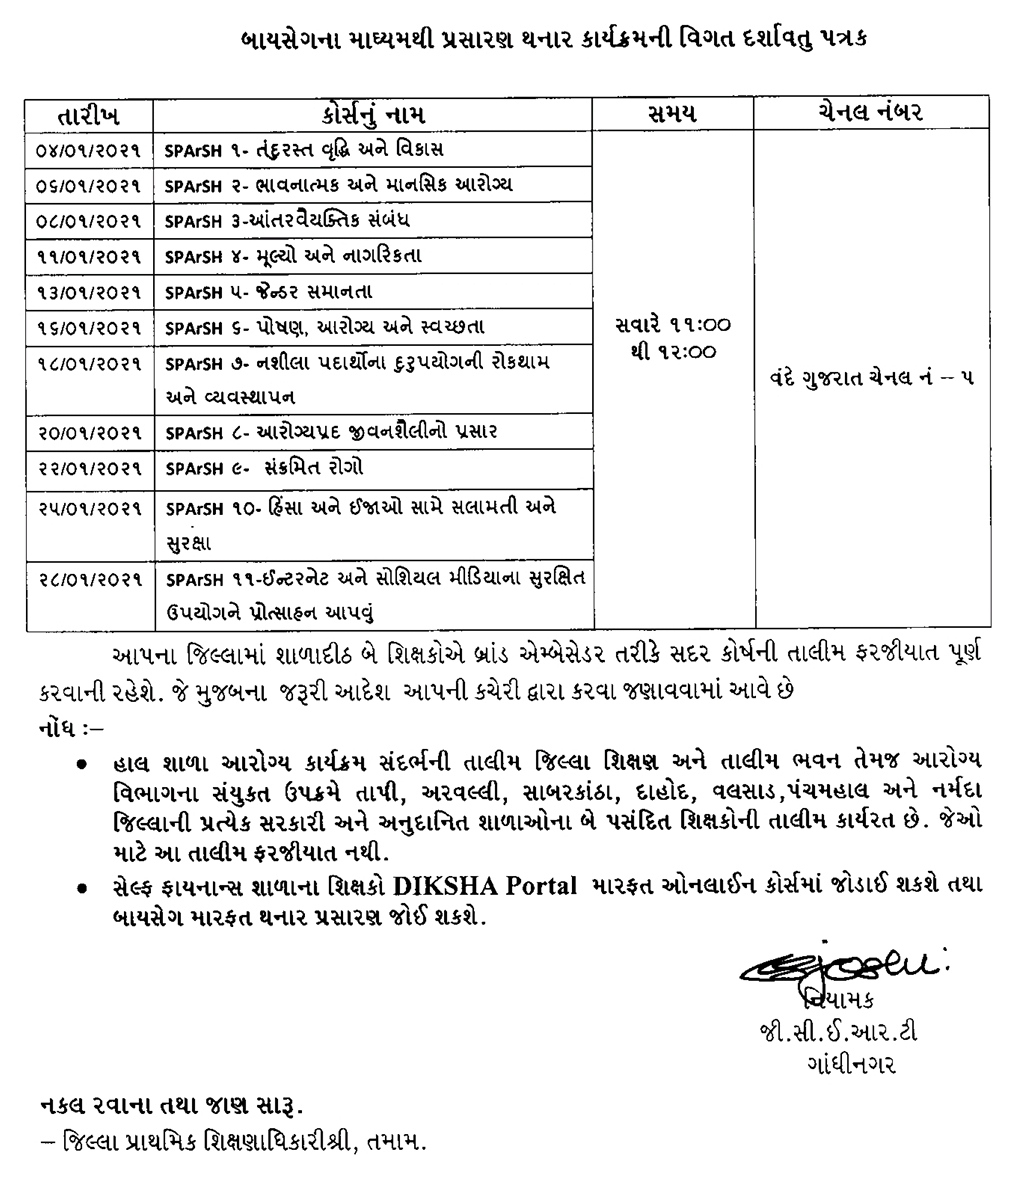 SPARSH TALIM TIME TABLE